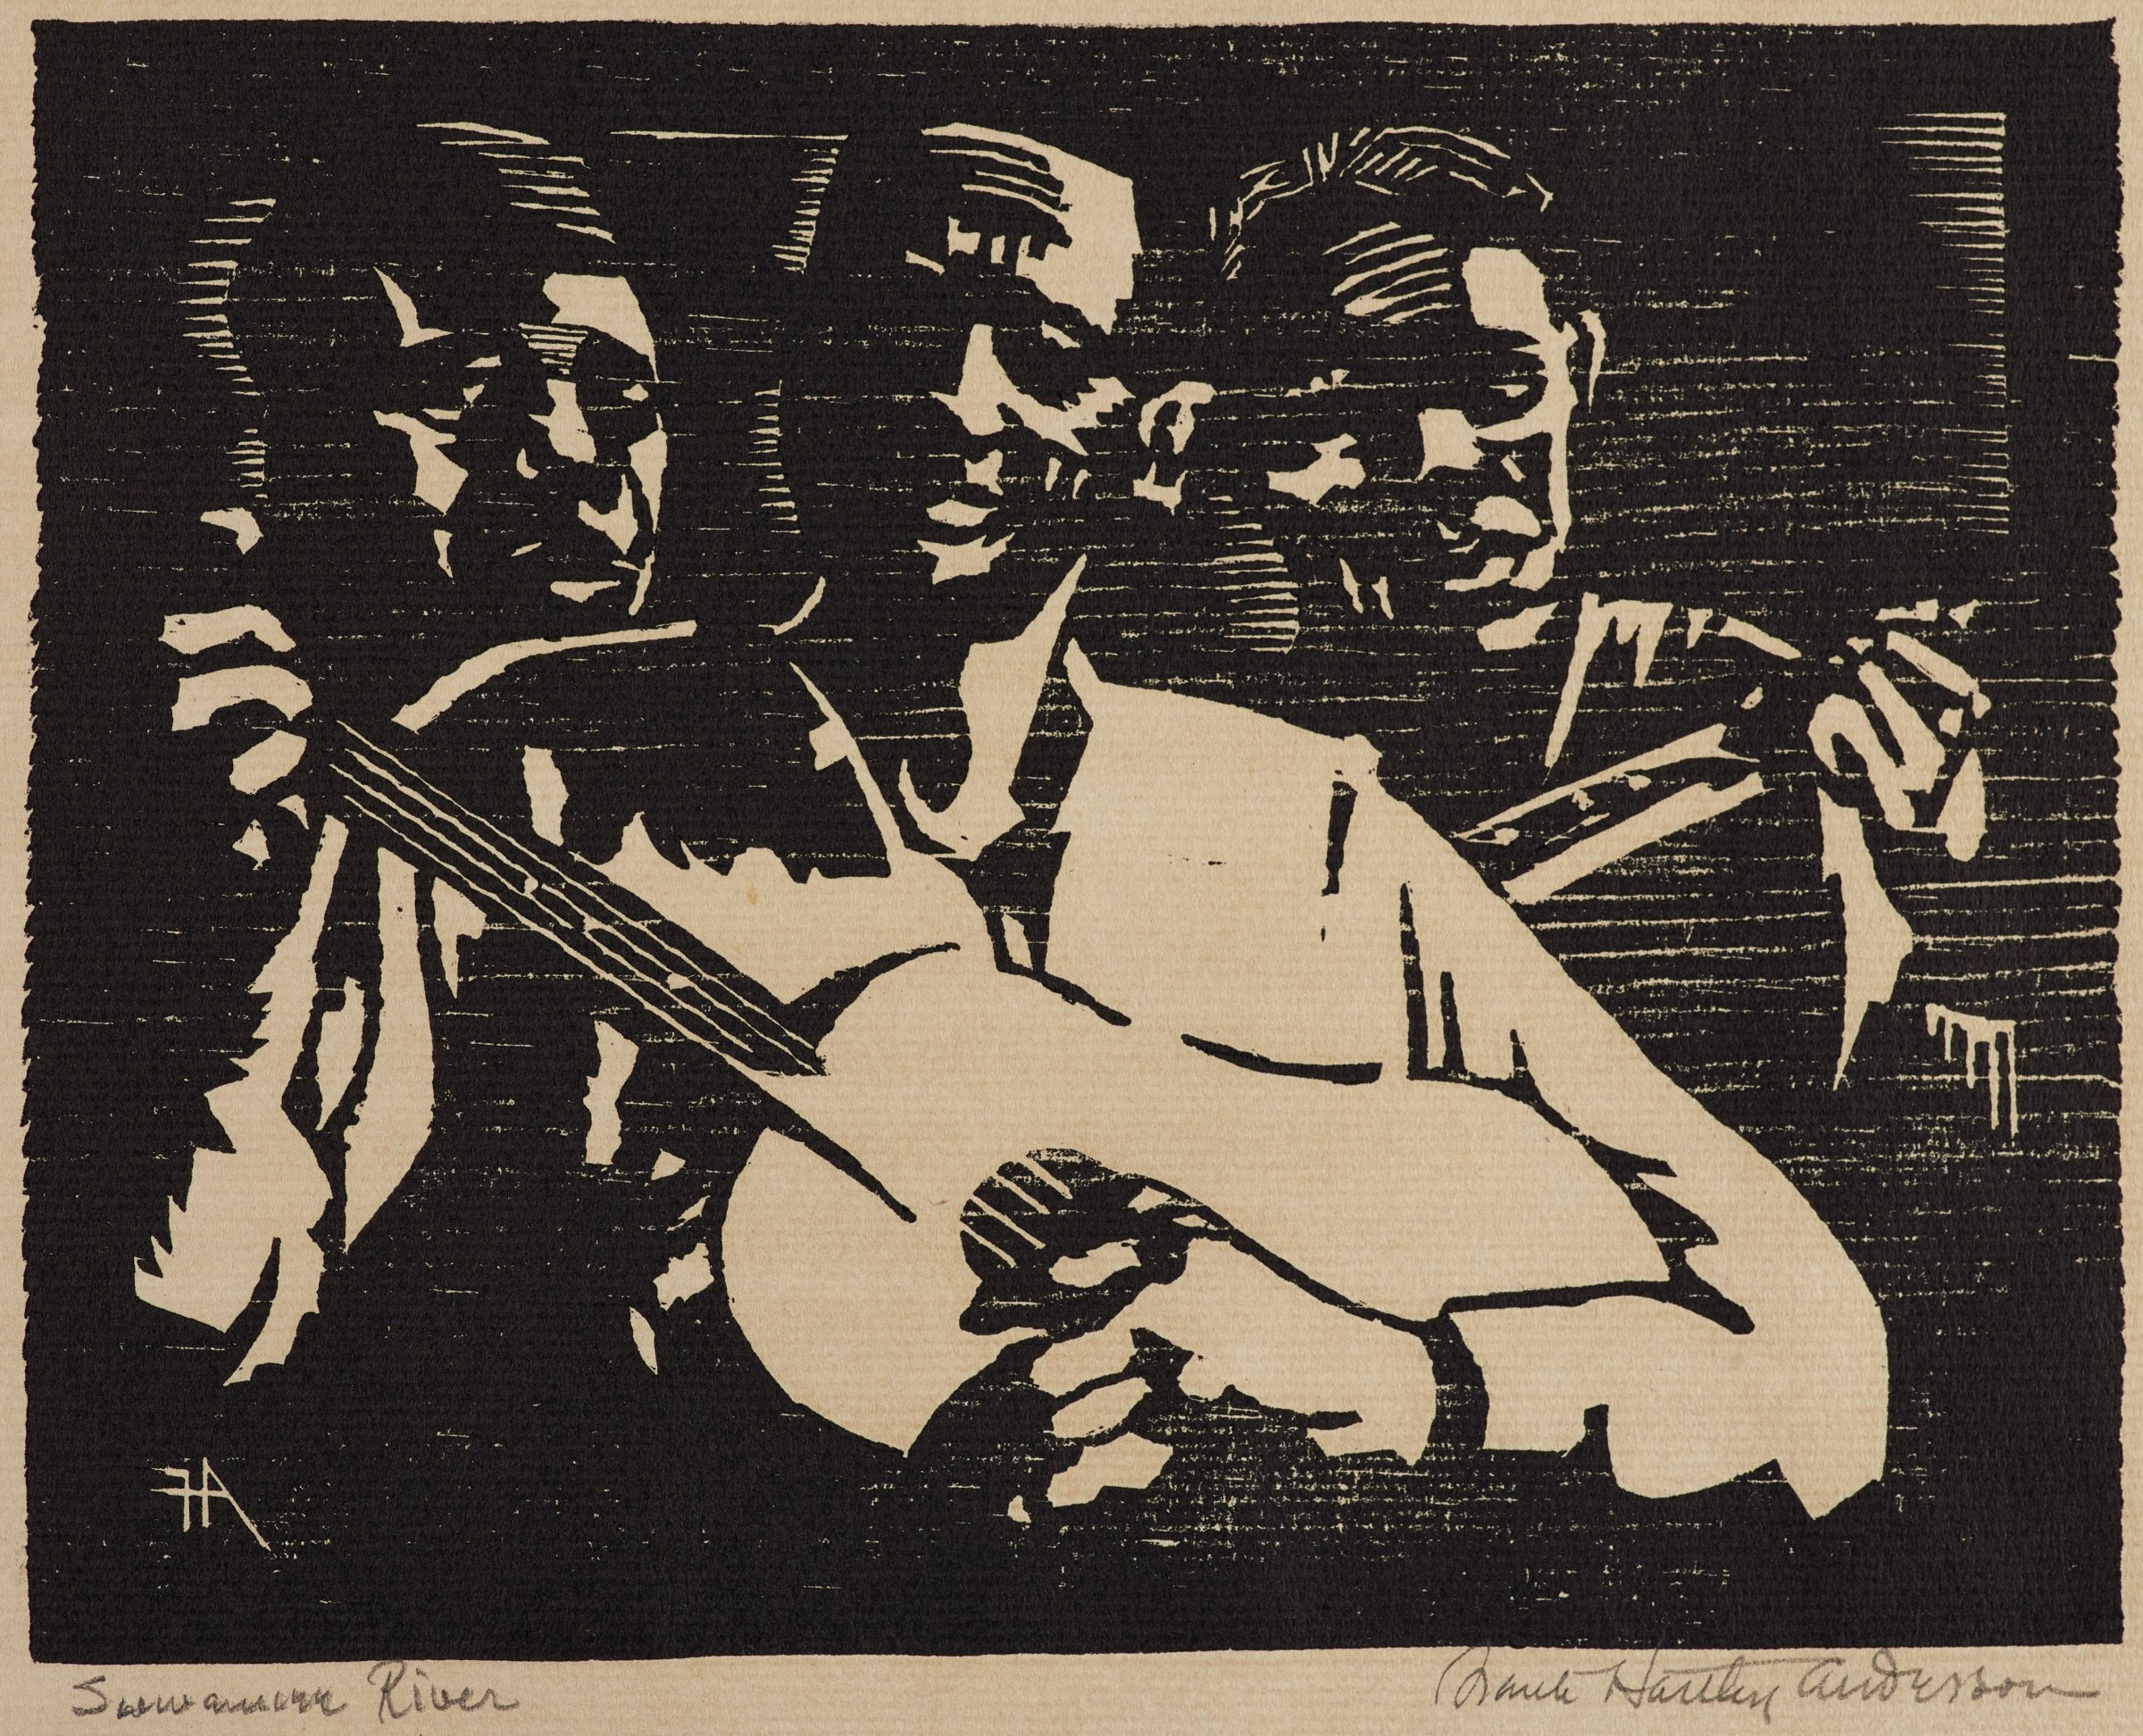 Three black men playing music. In the center foreground, a man plays a guitar, picking it with his proper left hand and holding its neck with his right. At left, a second man's head is visible over his shoulder.  At right, a third man plays what could be a guitar or a banjo, though we see only his head and his left hand fretting the instrument's neck.